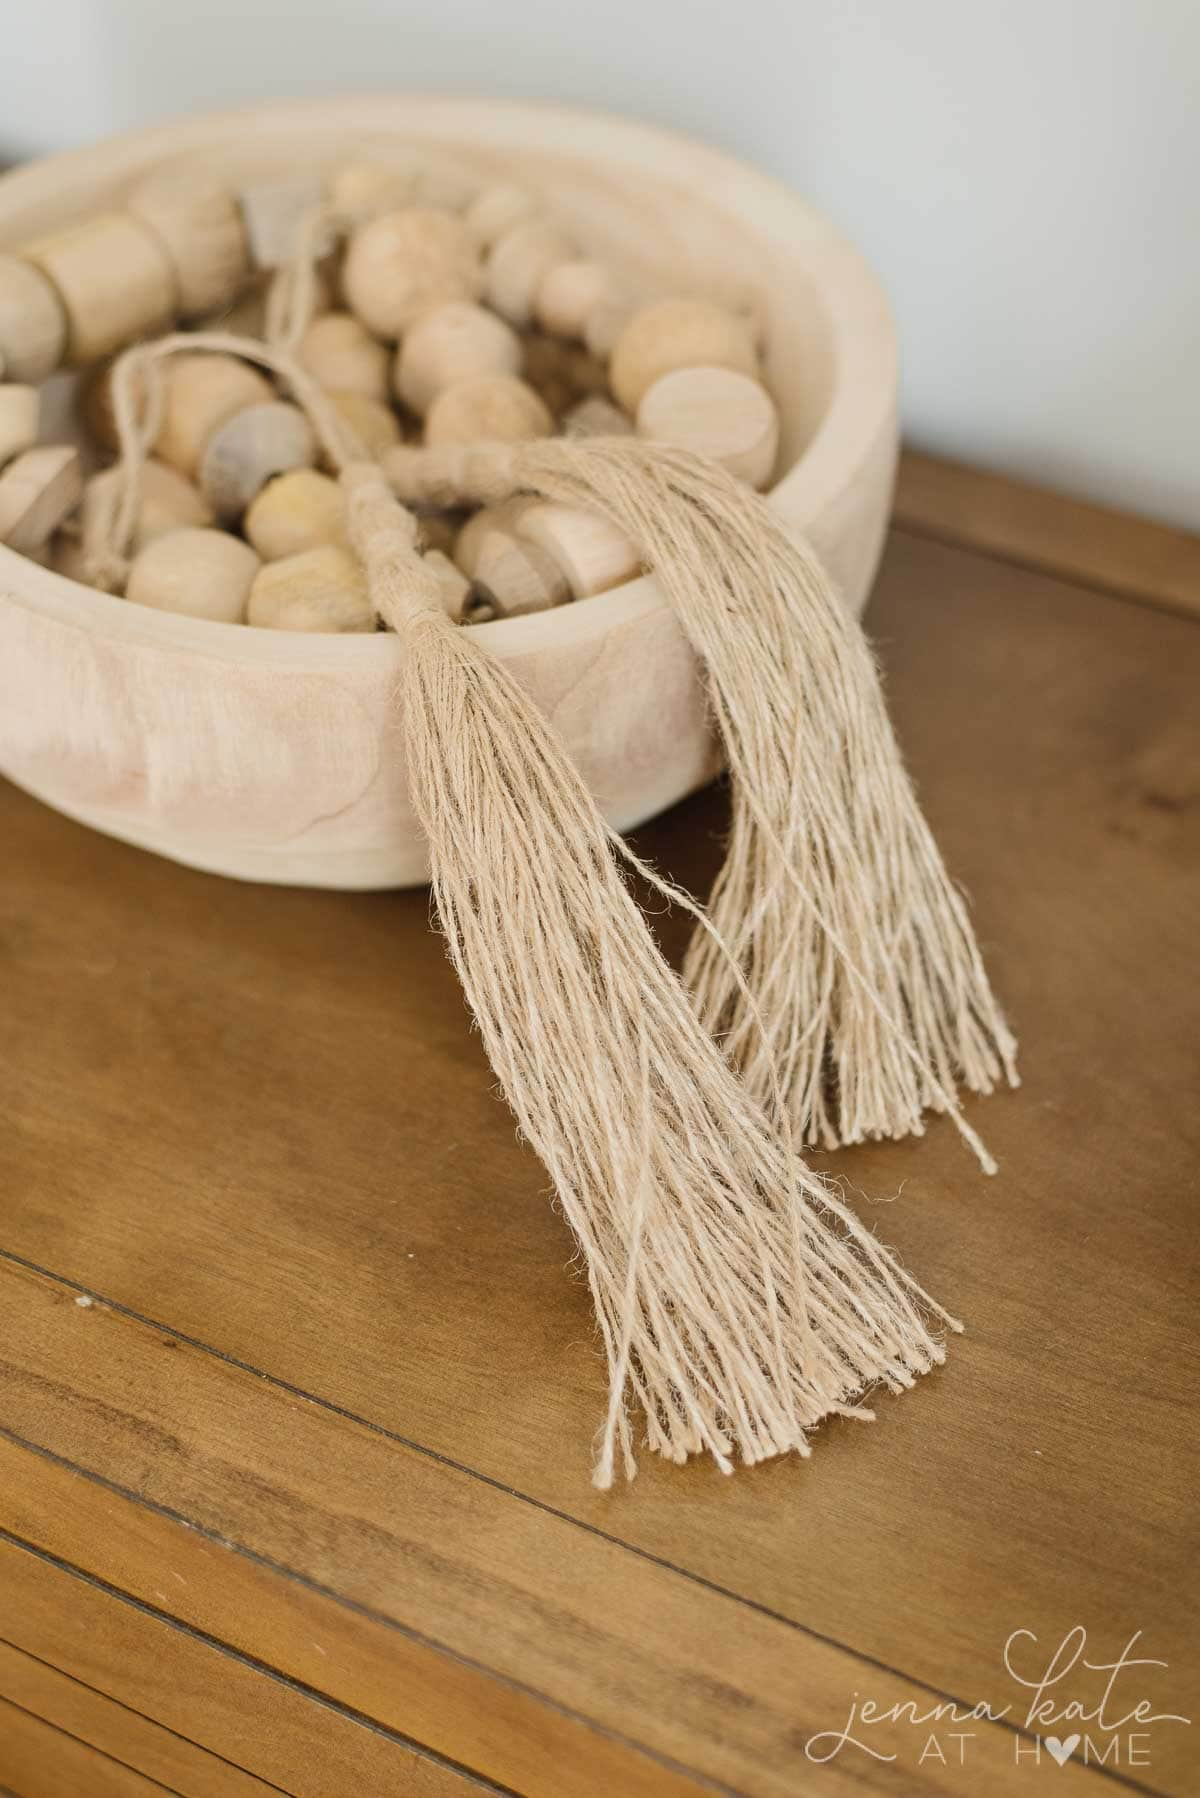 Wooden bowl with wood beads is uncluttered on a console table